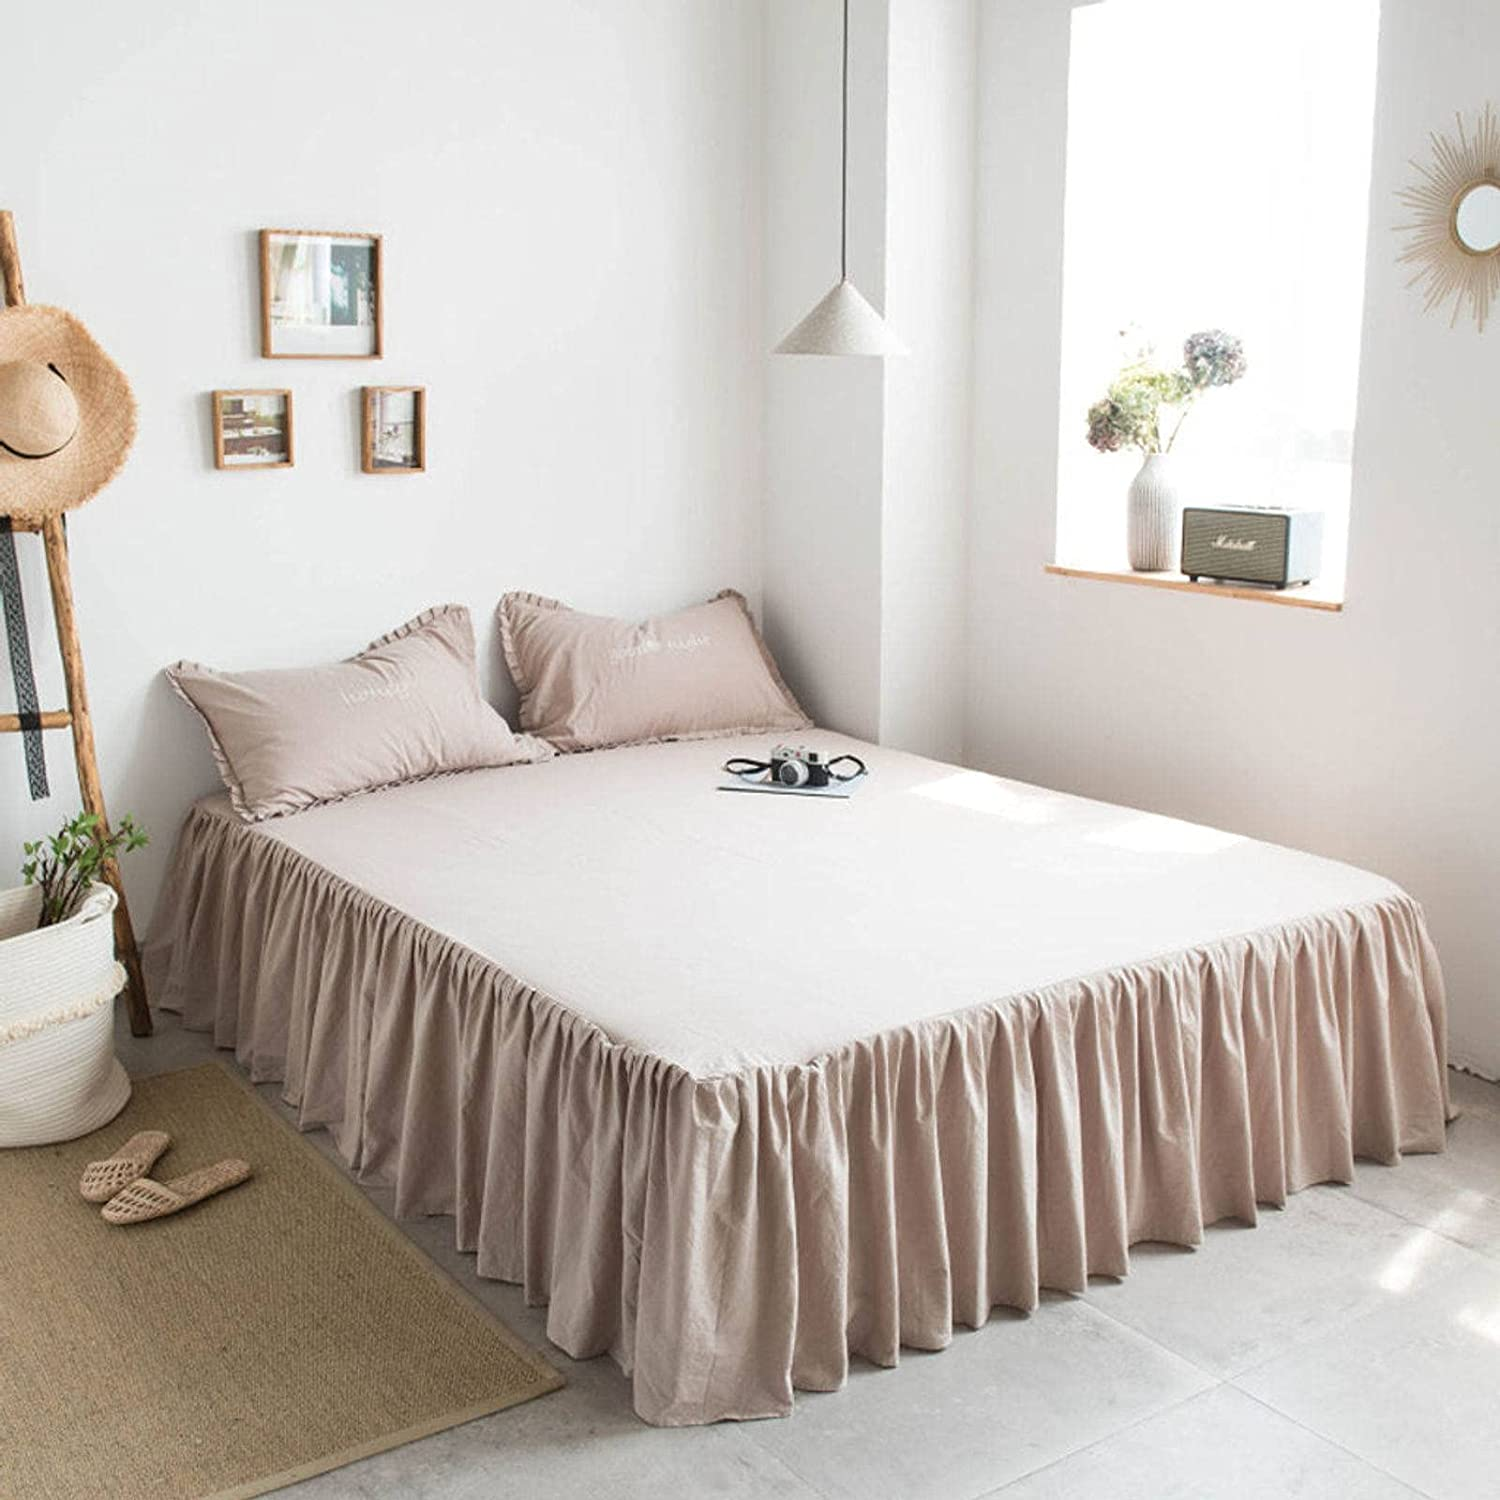 BEIGOO Ruffles Bed Skirt Dust Ruffle Color Around Wrap Solid Wri All items 67% OFF of fixed price in the store